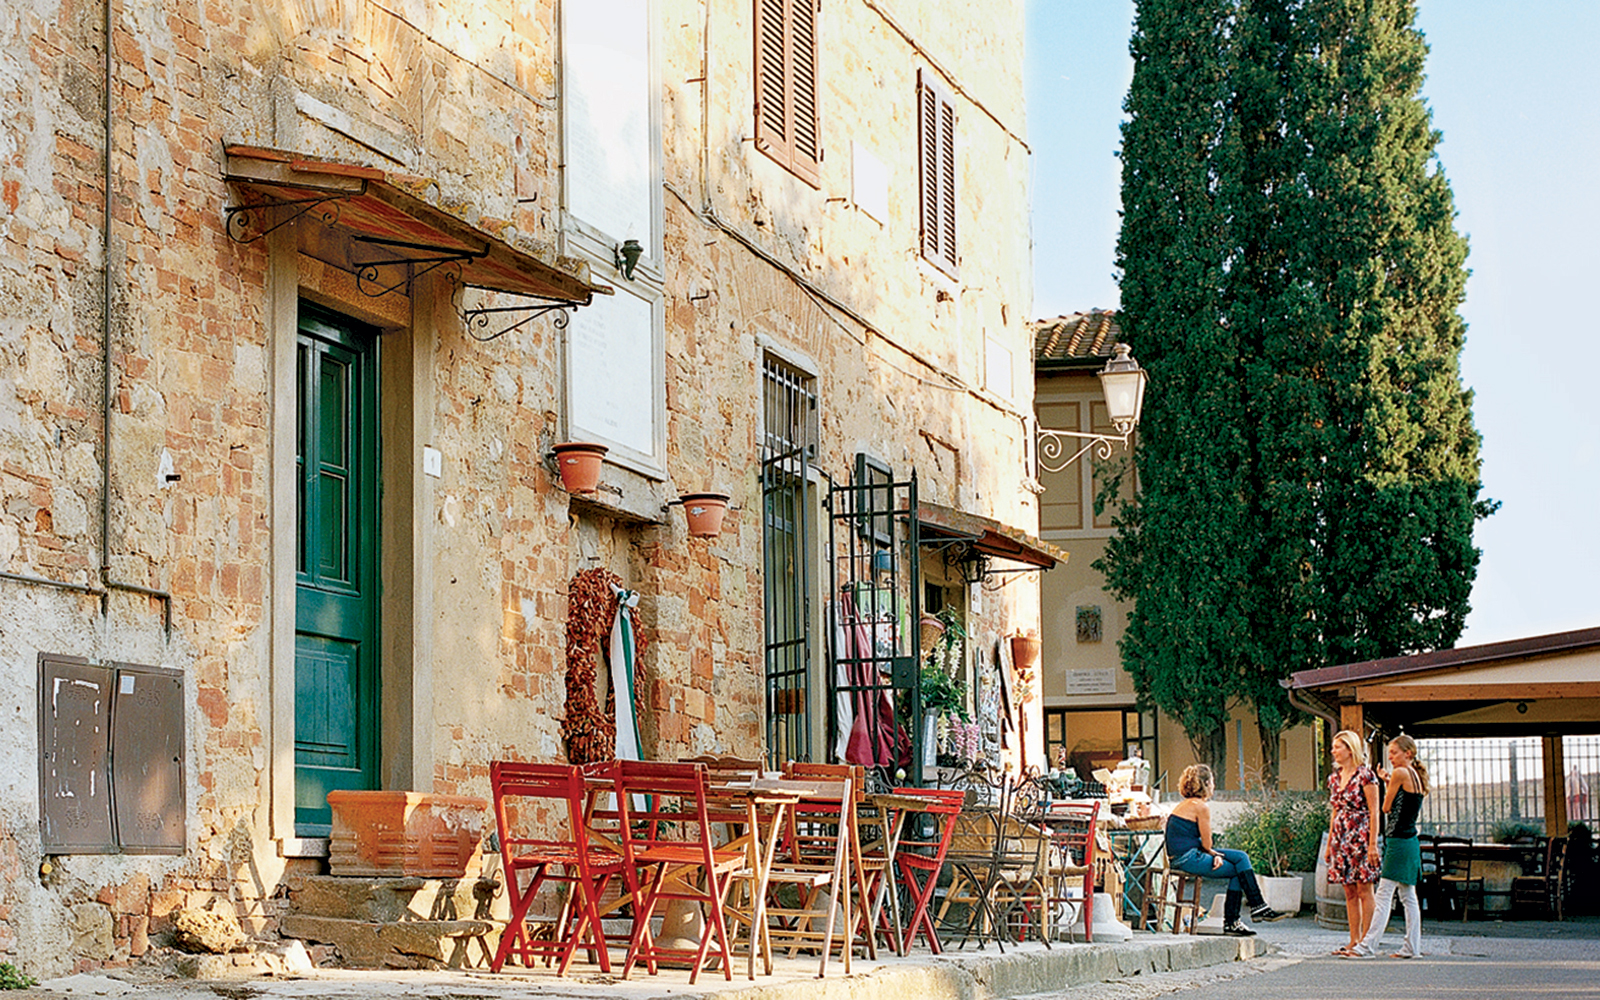 small town street cafe in Bolgheri, Italy